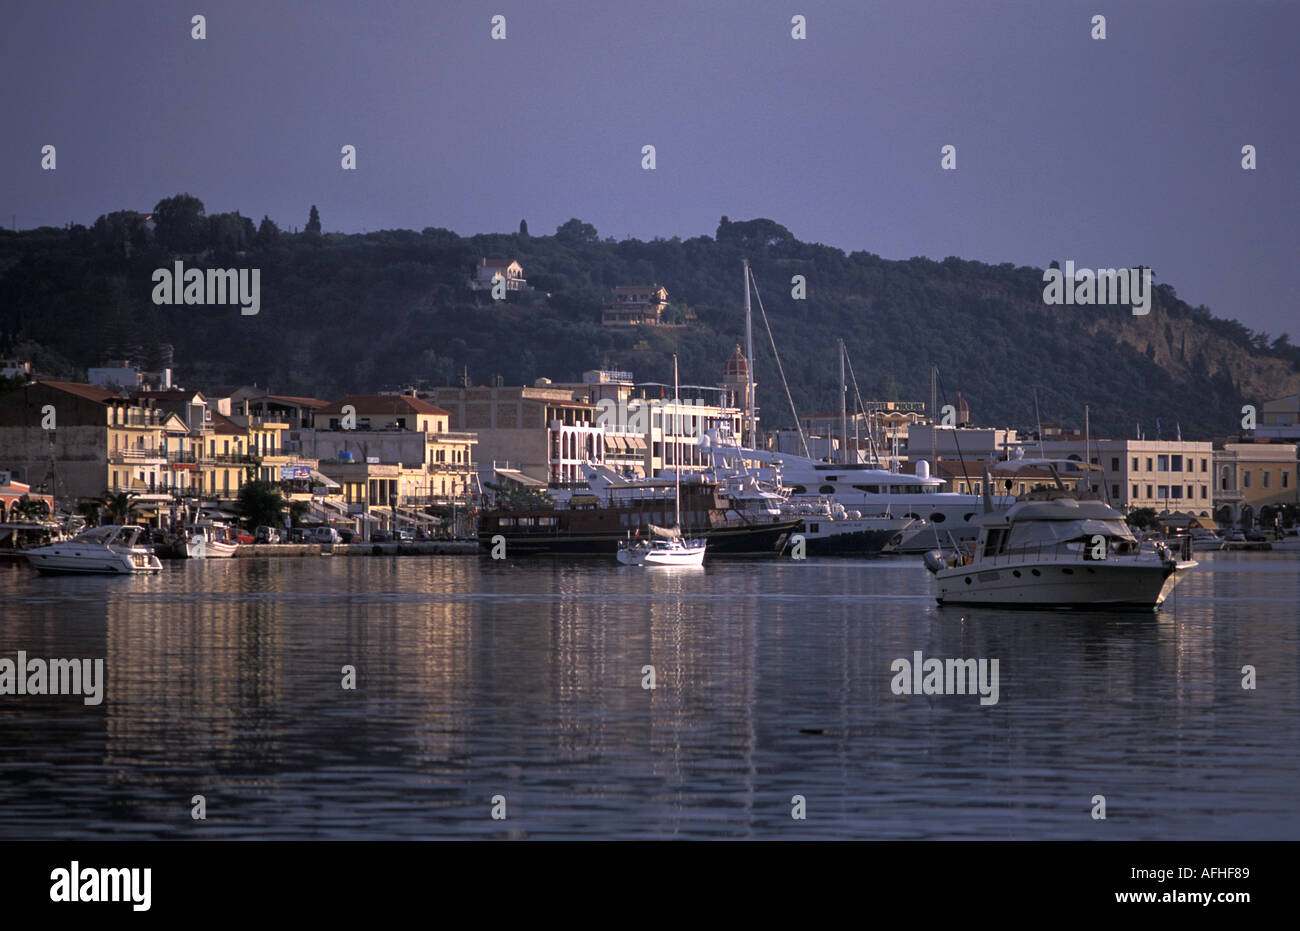 Zakynthos town and harbour viewed from boat Zakynthos island also known as Zante Ionian Islands Greece Mediterranean Sea - Stock Image